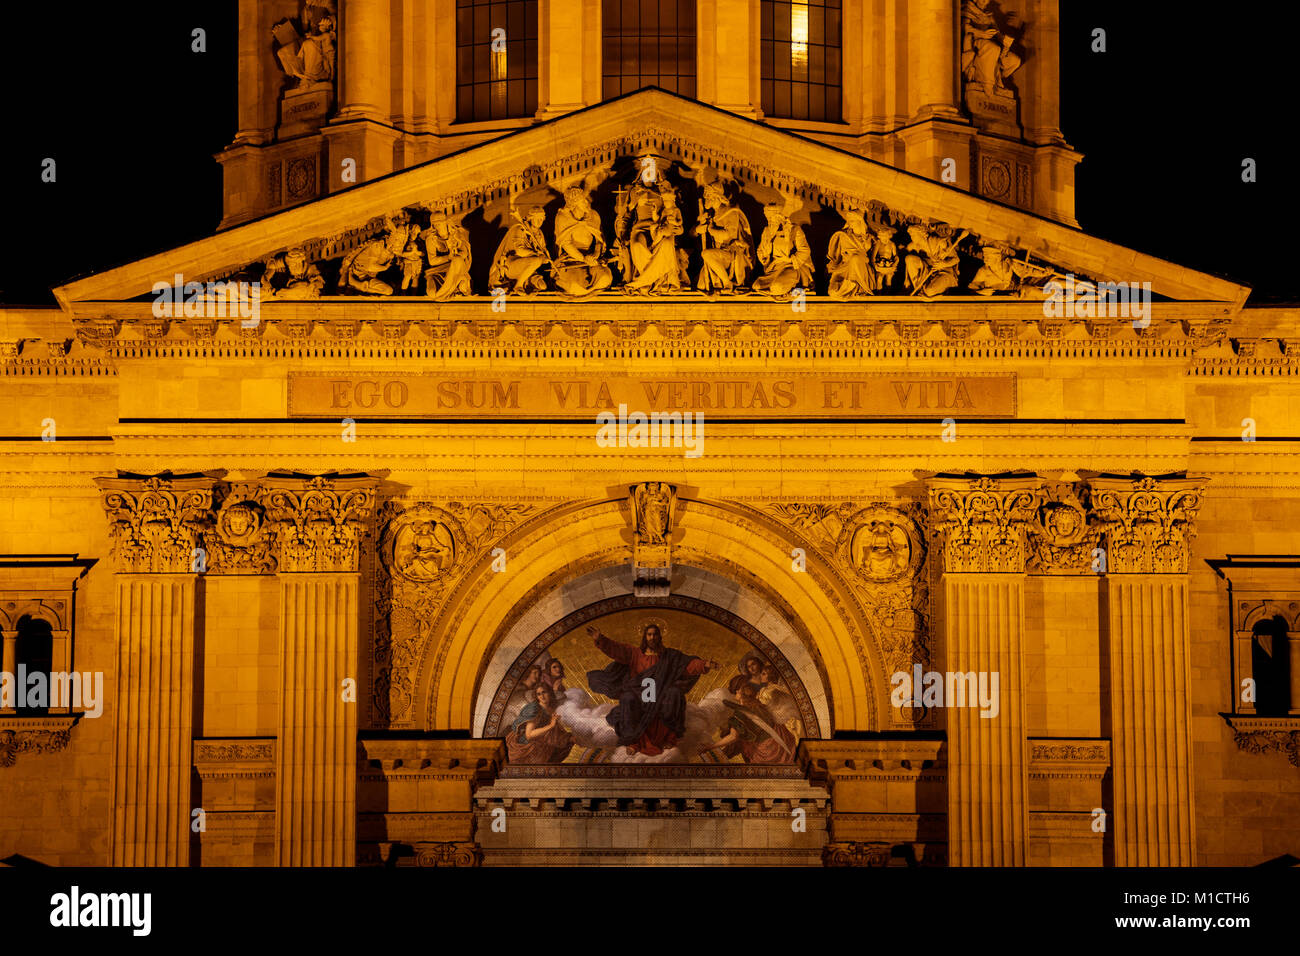 St. Stephen's Basilica in Budapest architectural details by night in Hungary, Europe, Latin inscription of Jesus - Stock Image